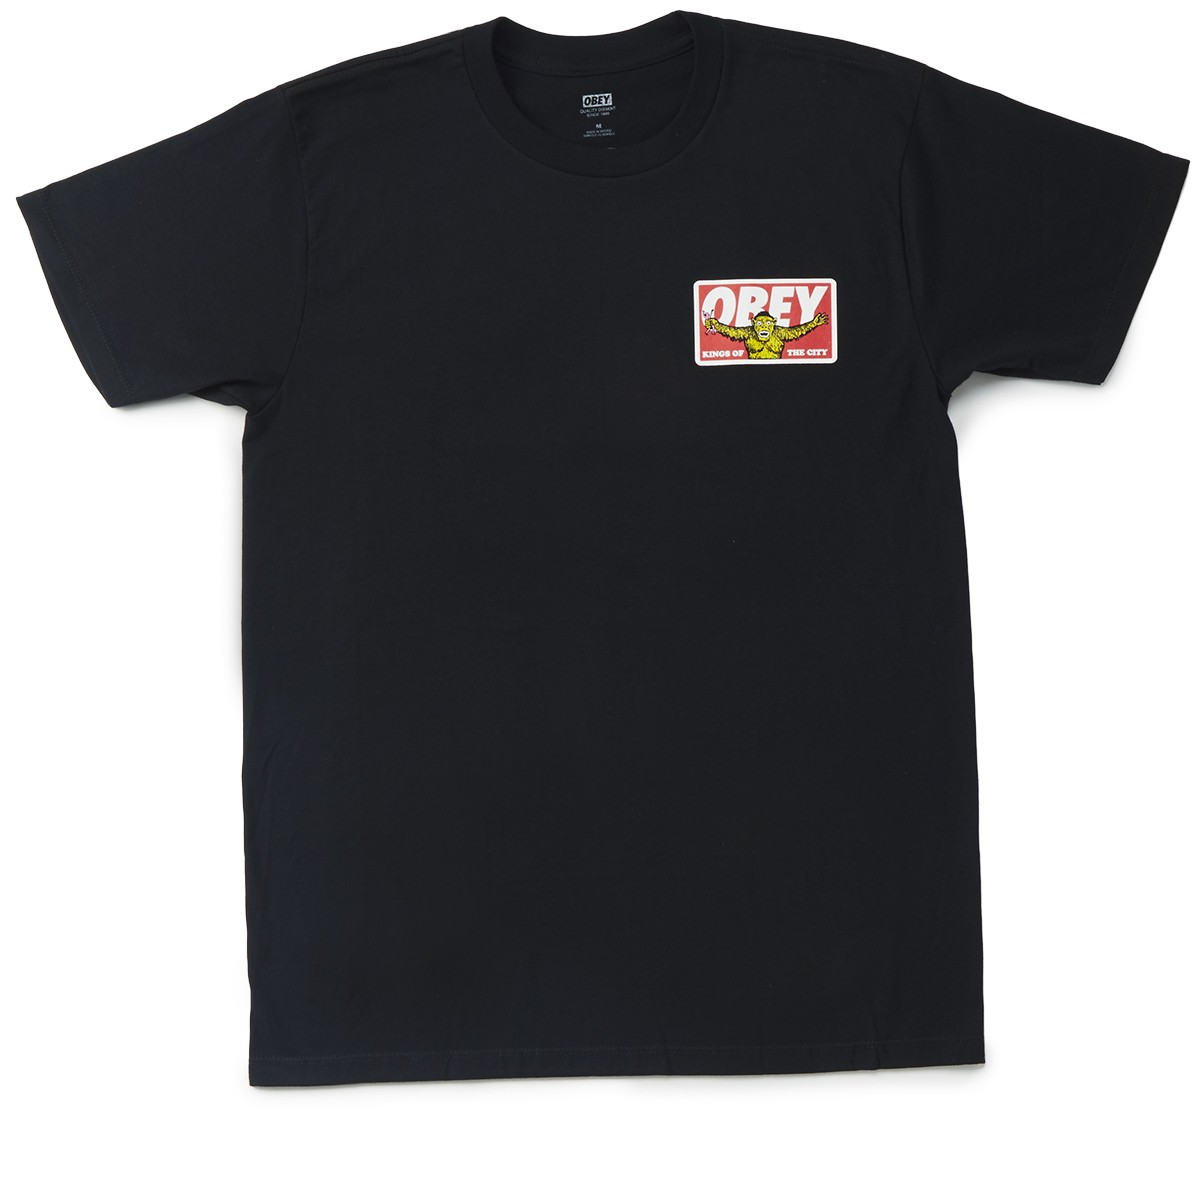 Obey Kings Of The City T Shirt Black